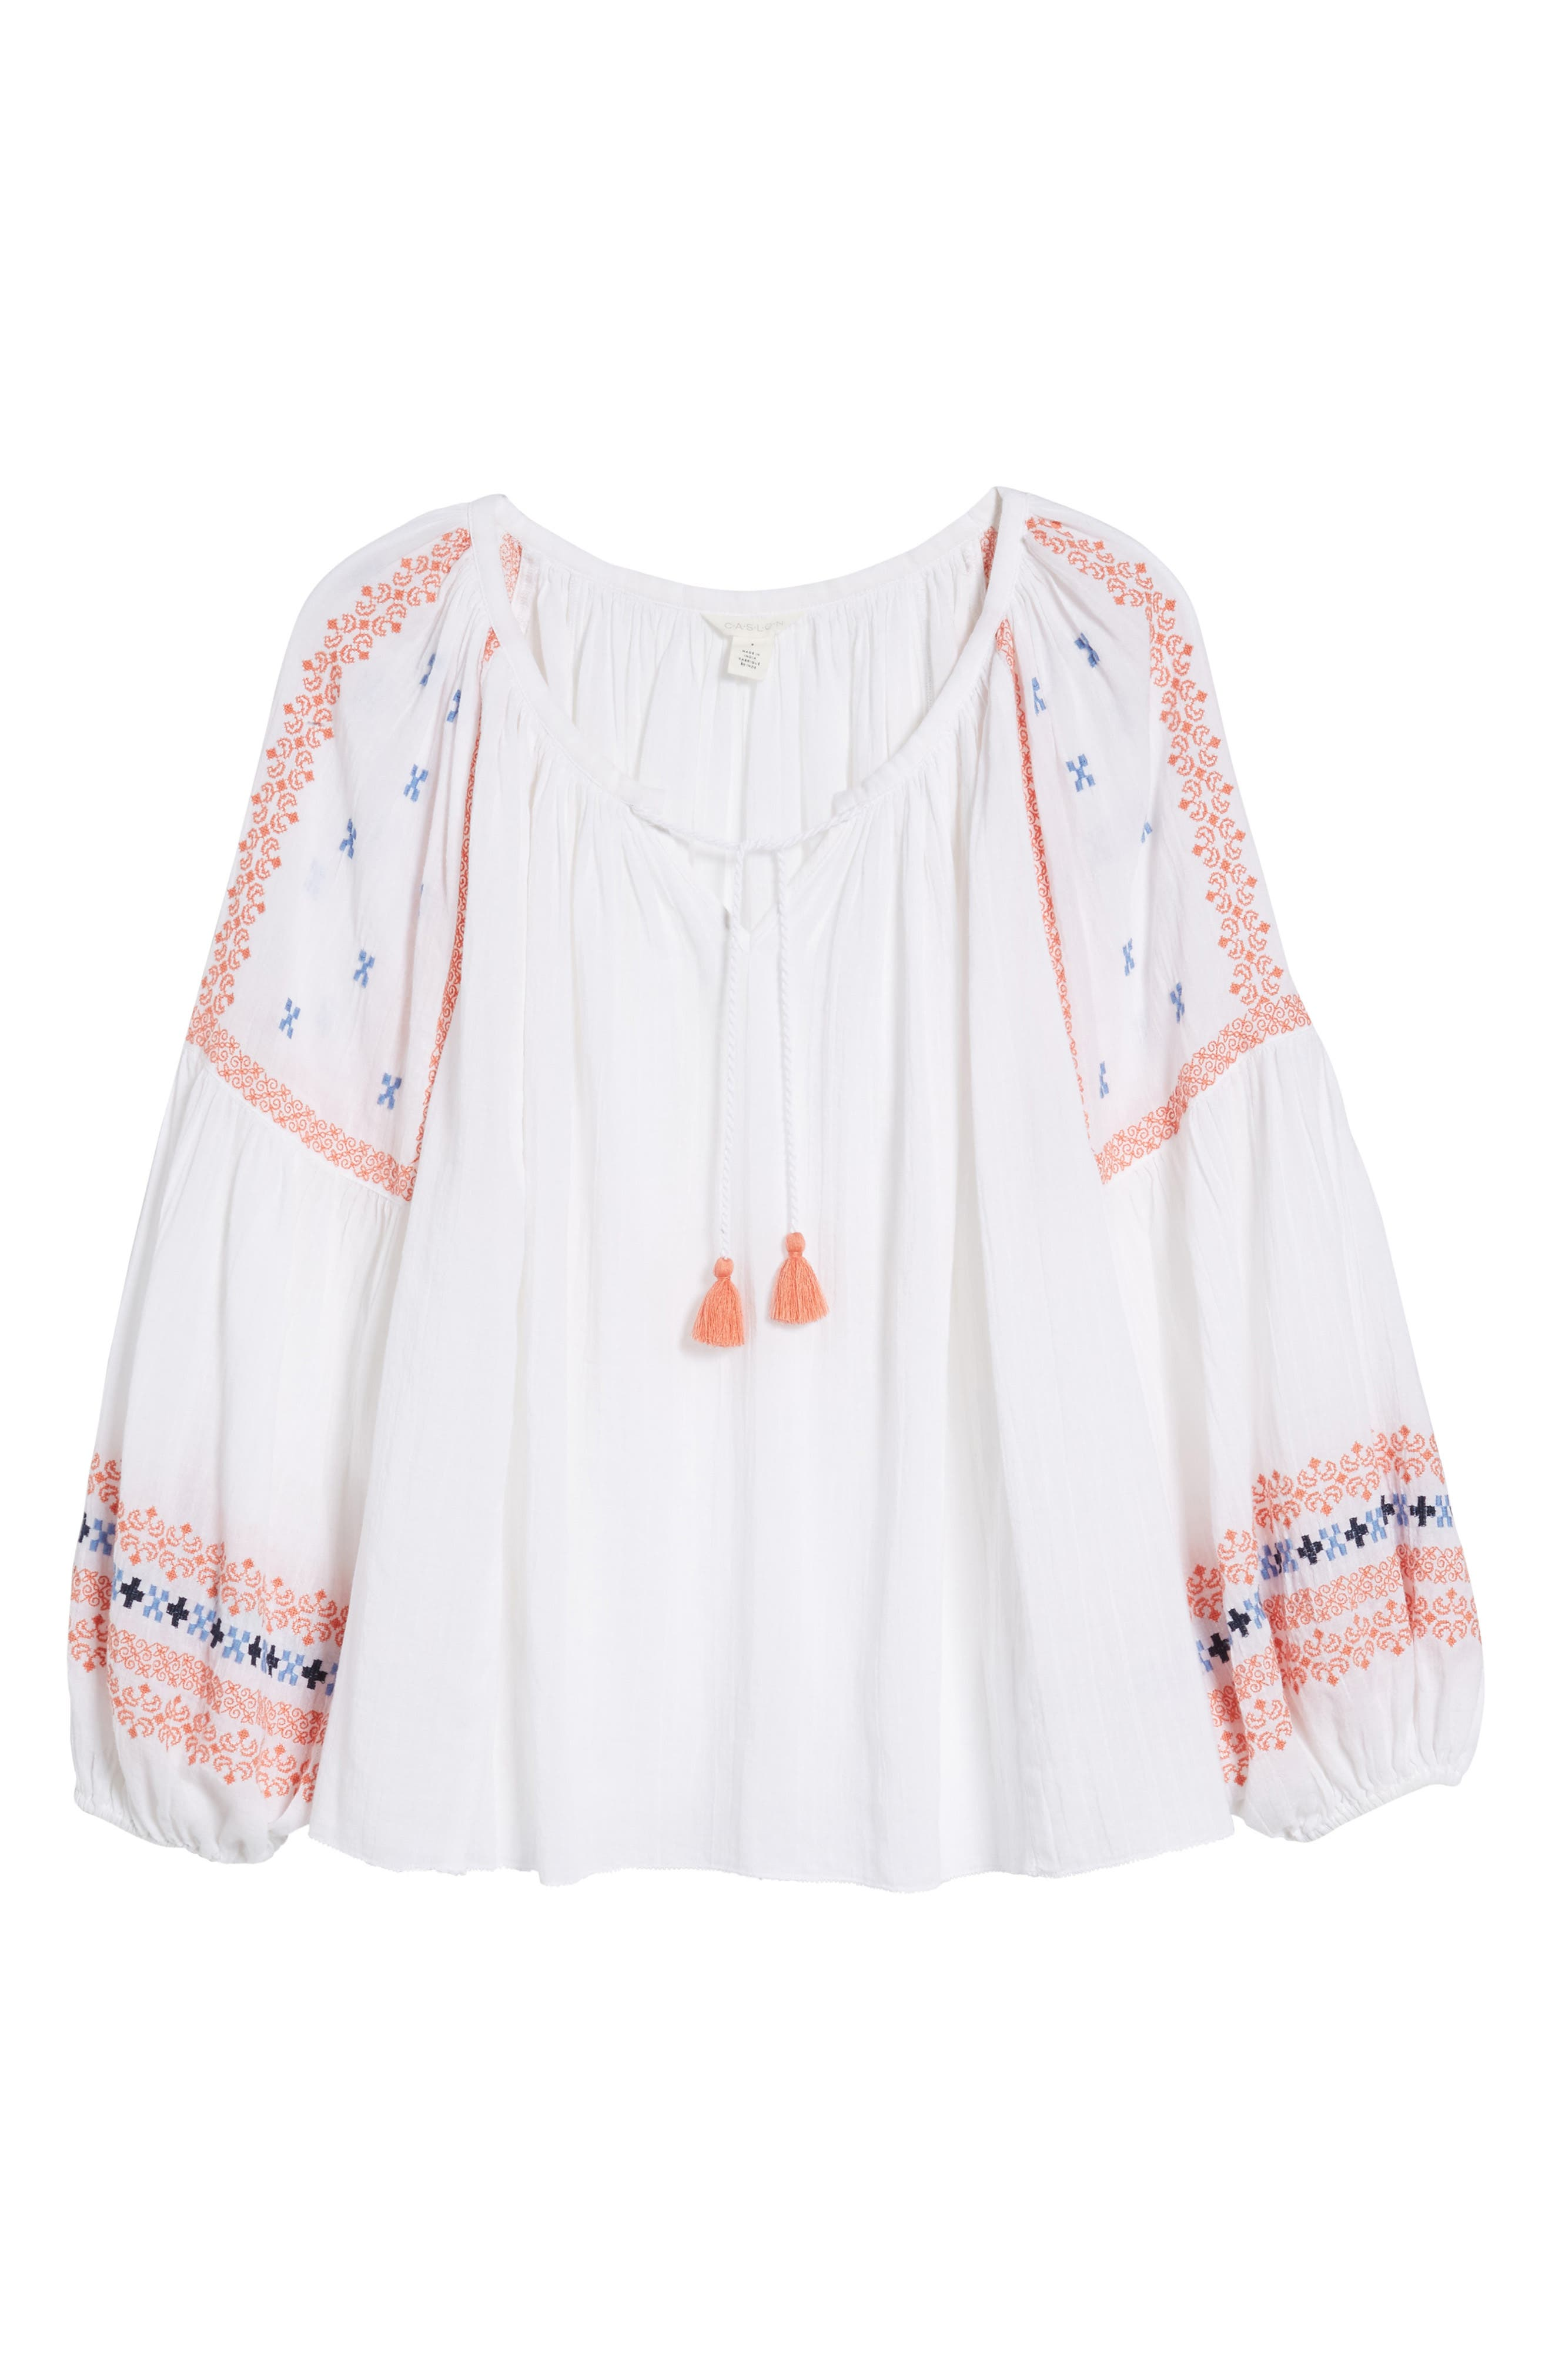 Embroidered Peasant Top,                             Alternate thumbnail 7, color,                             100